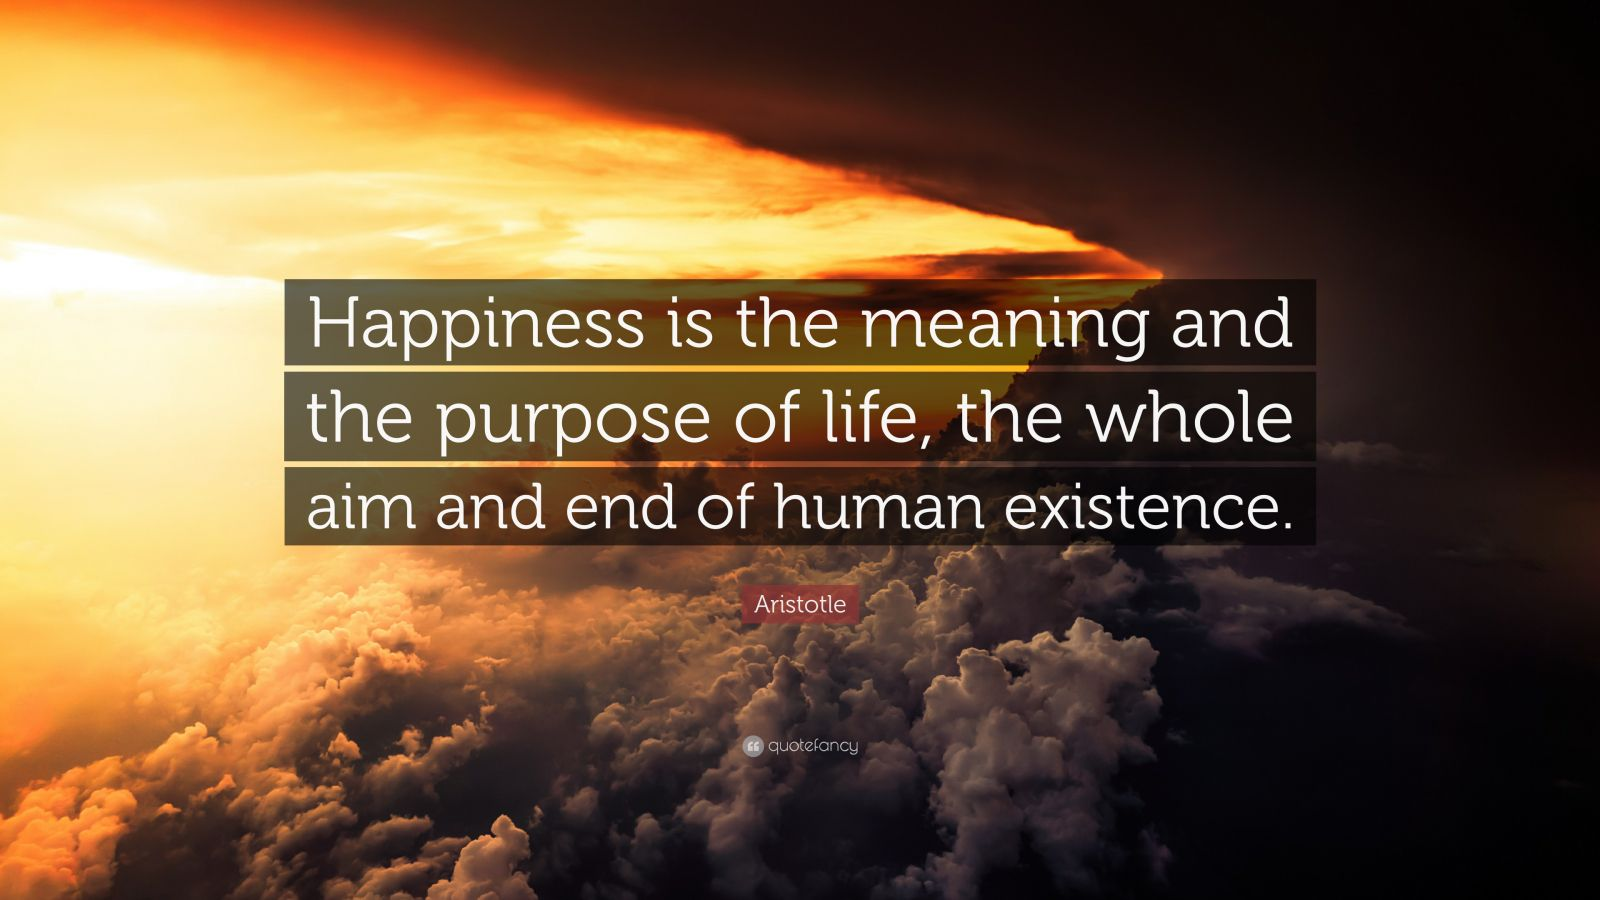 """purpose and meaning of human existence essay It is the choice to do with our lives as we wish that gives our existence true meaning and purpose  as the essay """"a much greater  it is full of meaning to me, atheism is a life of wonder ."""